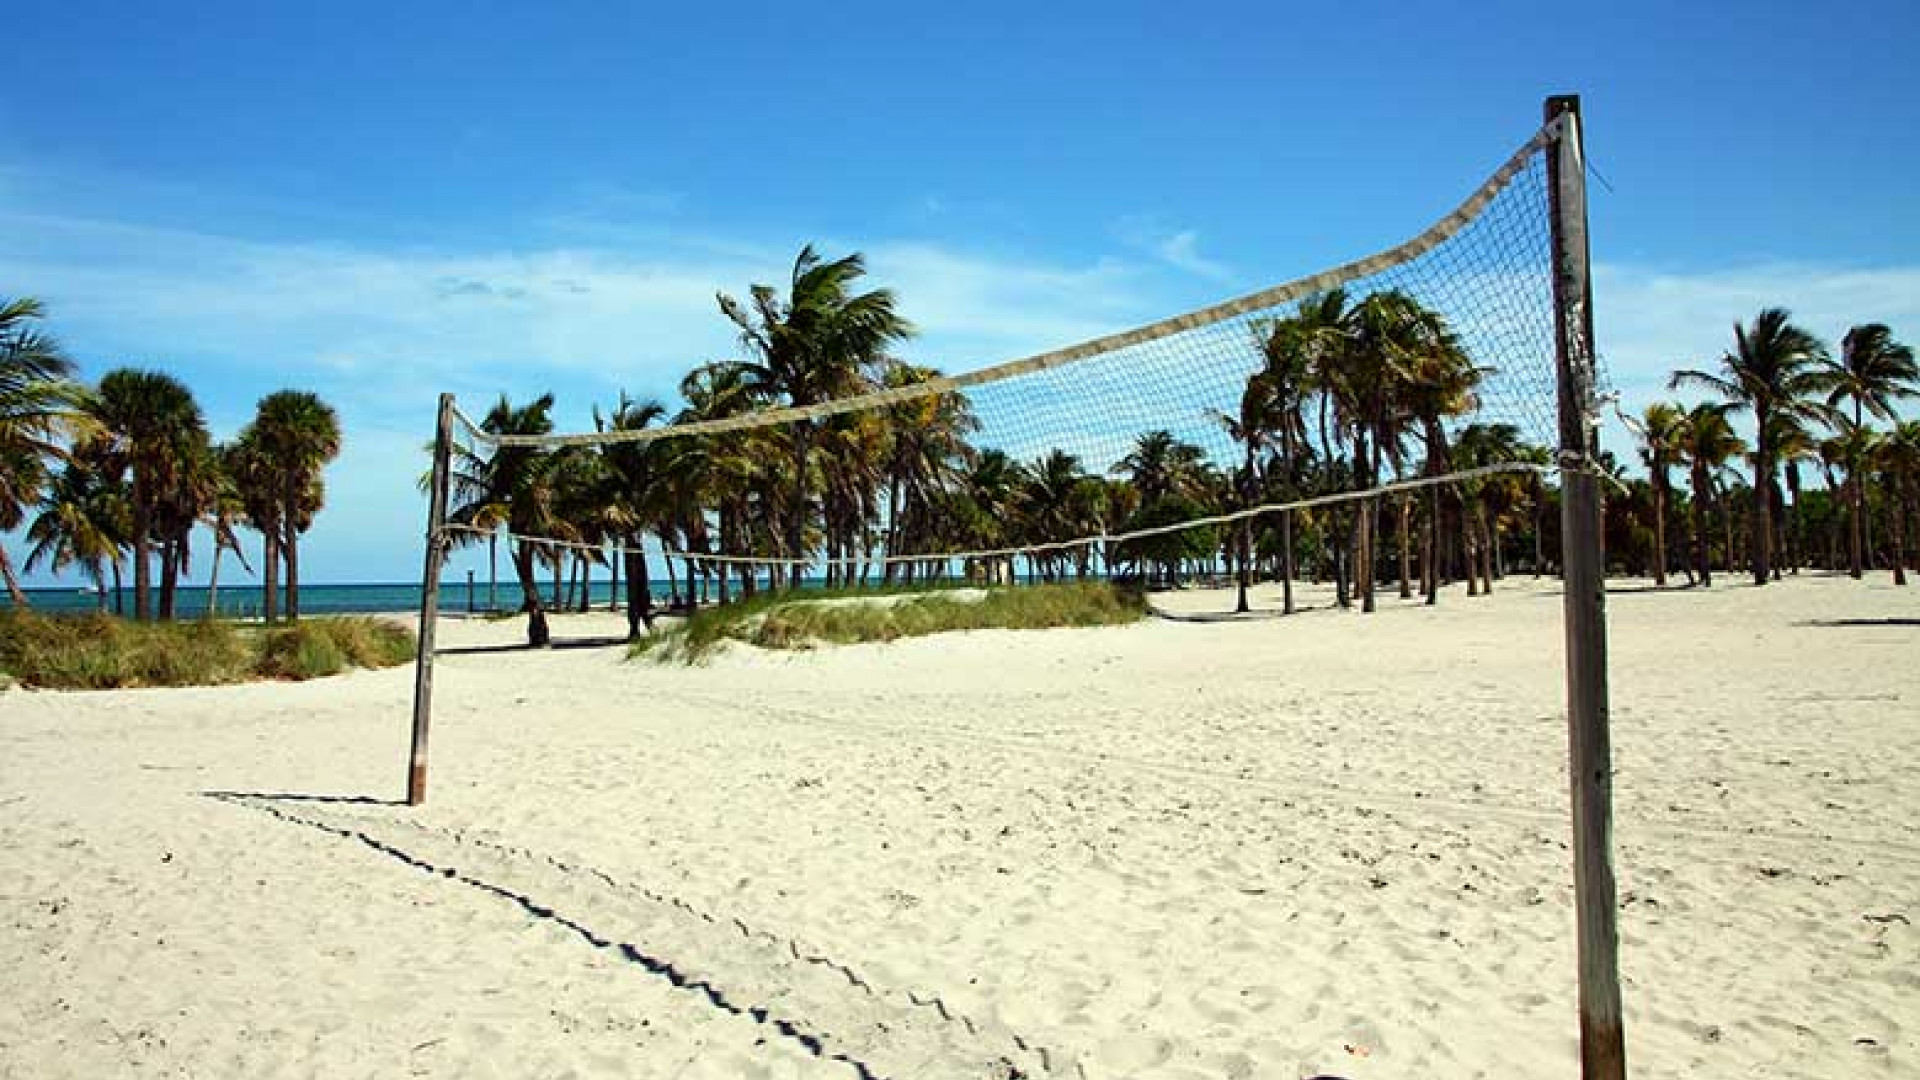 South Beach Volleyball